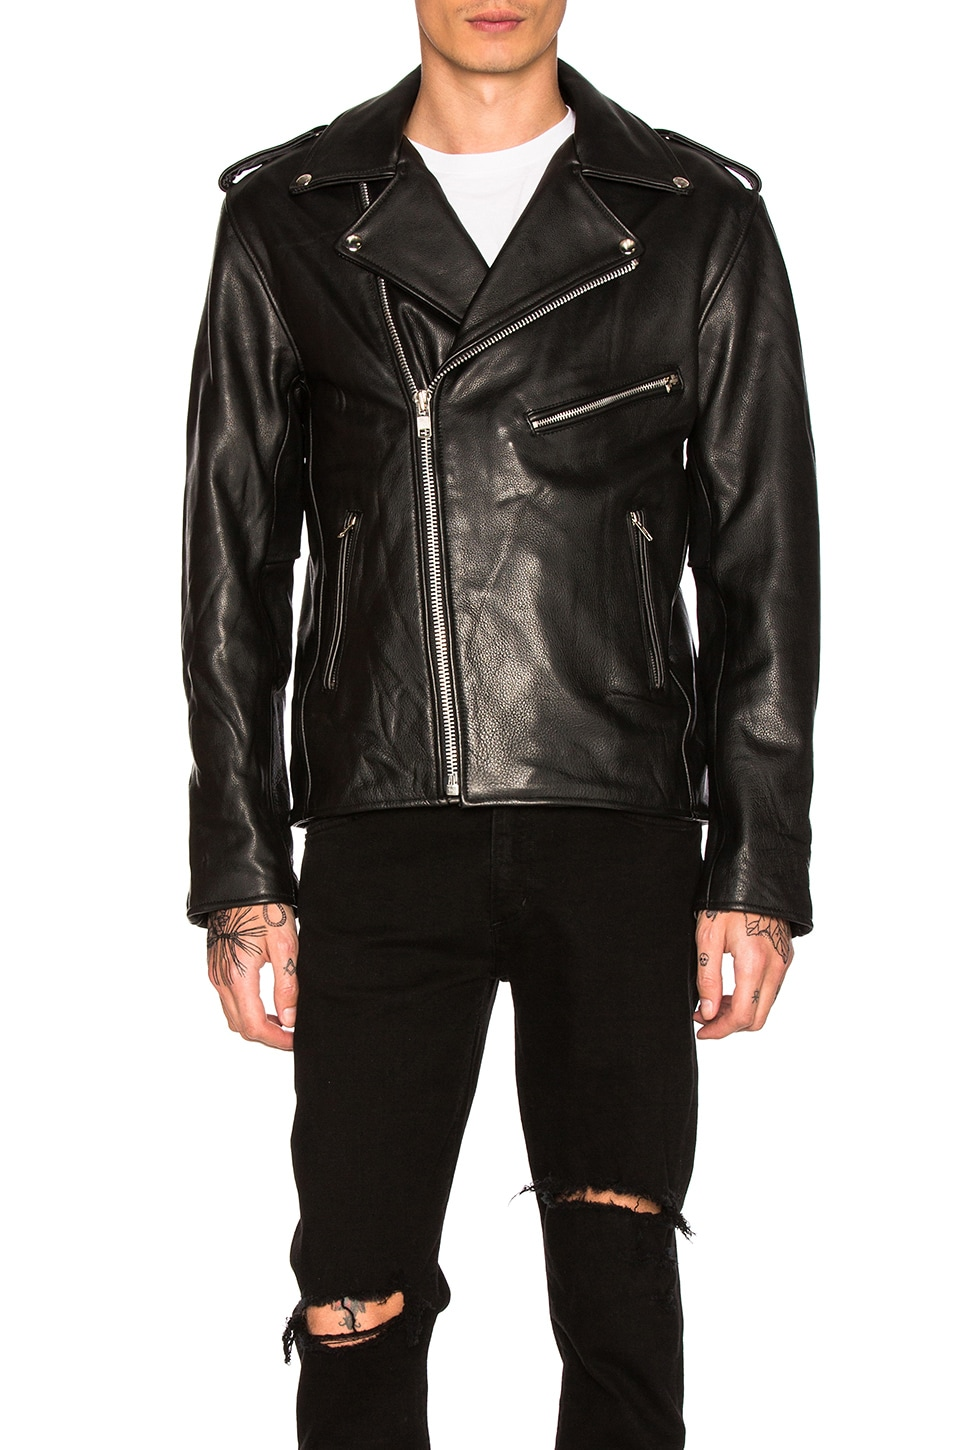 Easy Rider MC Jacket by Understated Leather